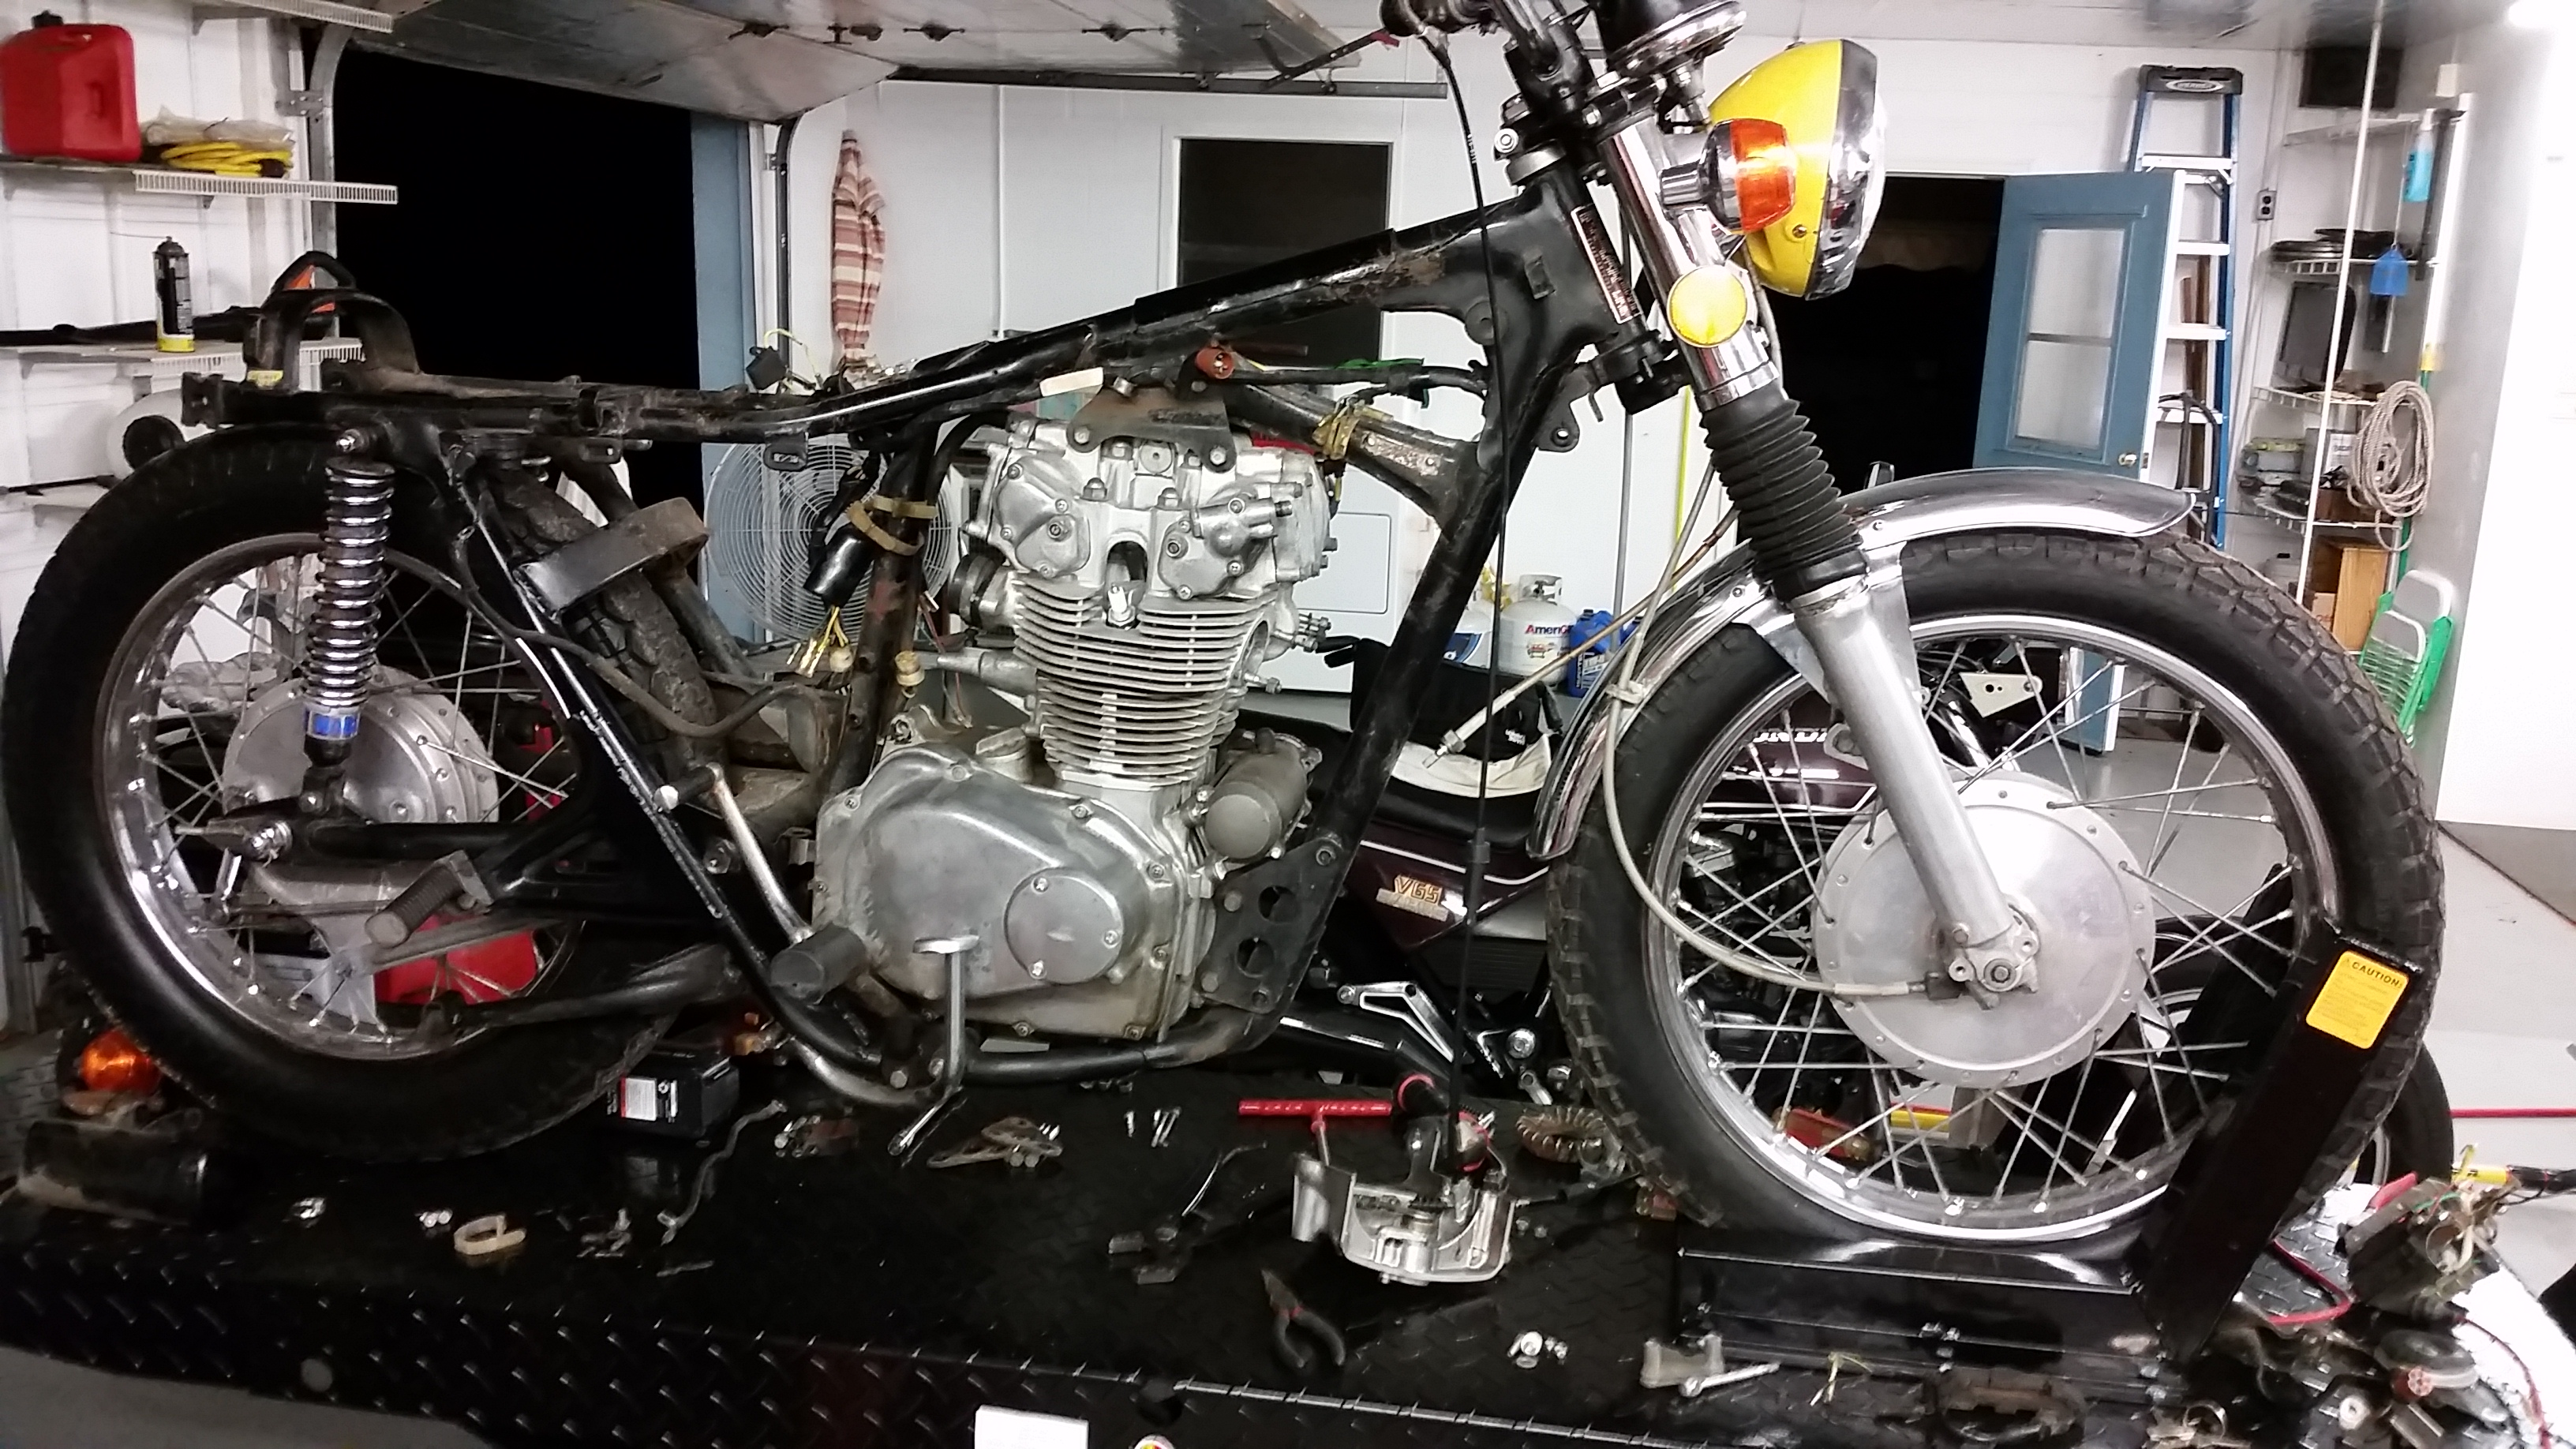 CL450 project reboot, street legal this time-20161015_194809.jpg